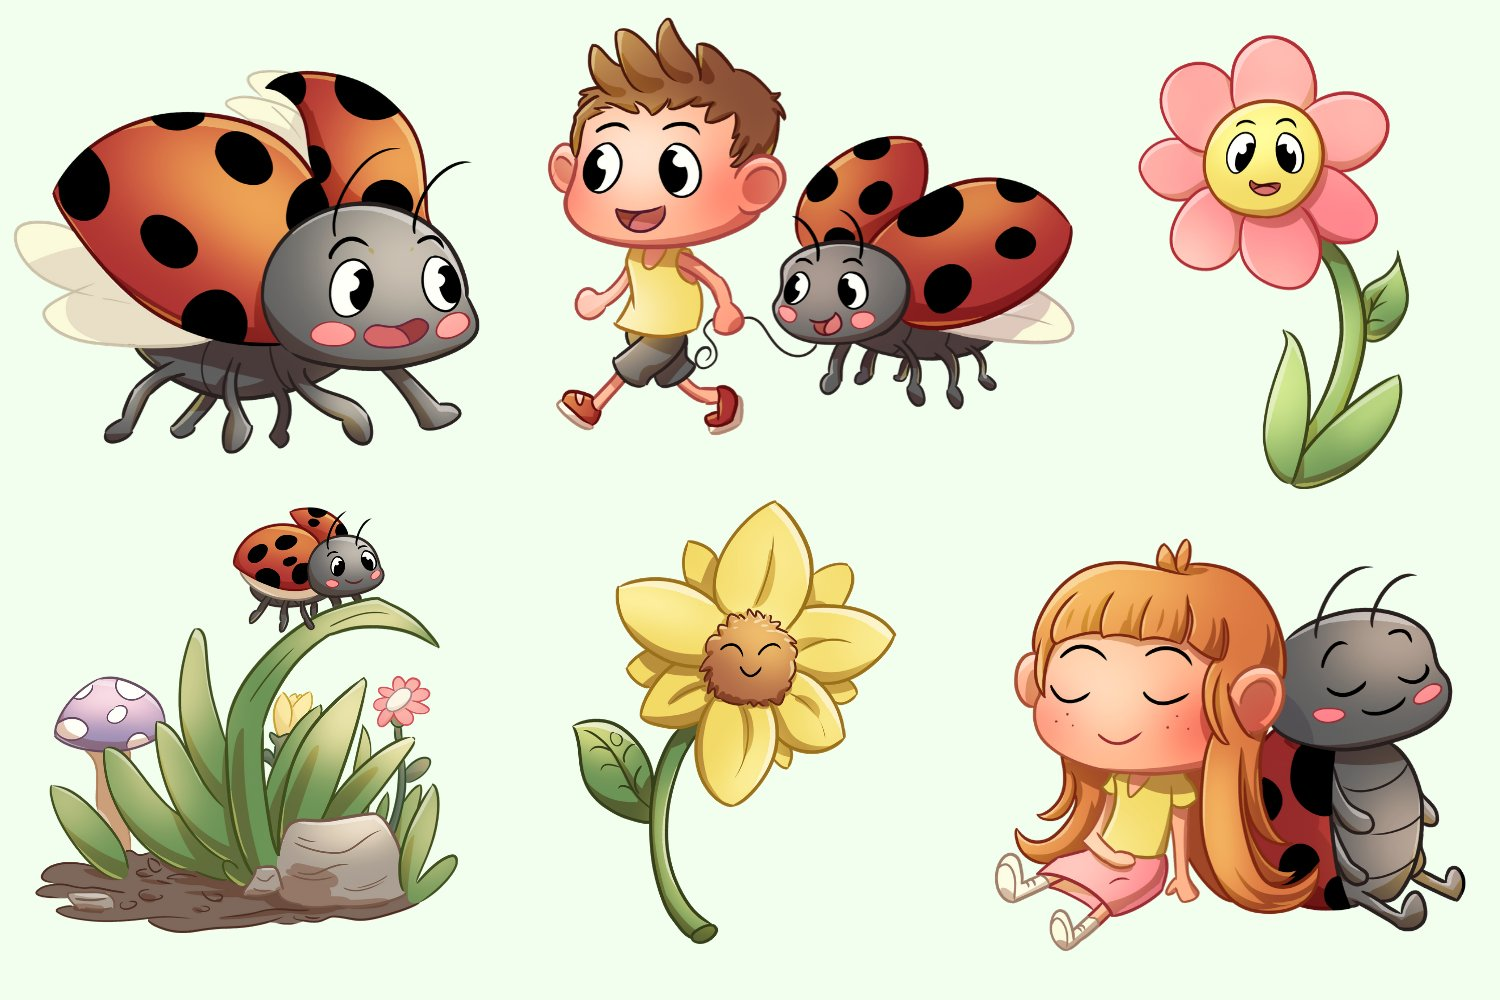 Lady Bug Friends Cute Illustrations example image 2